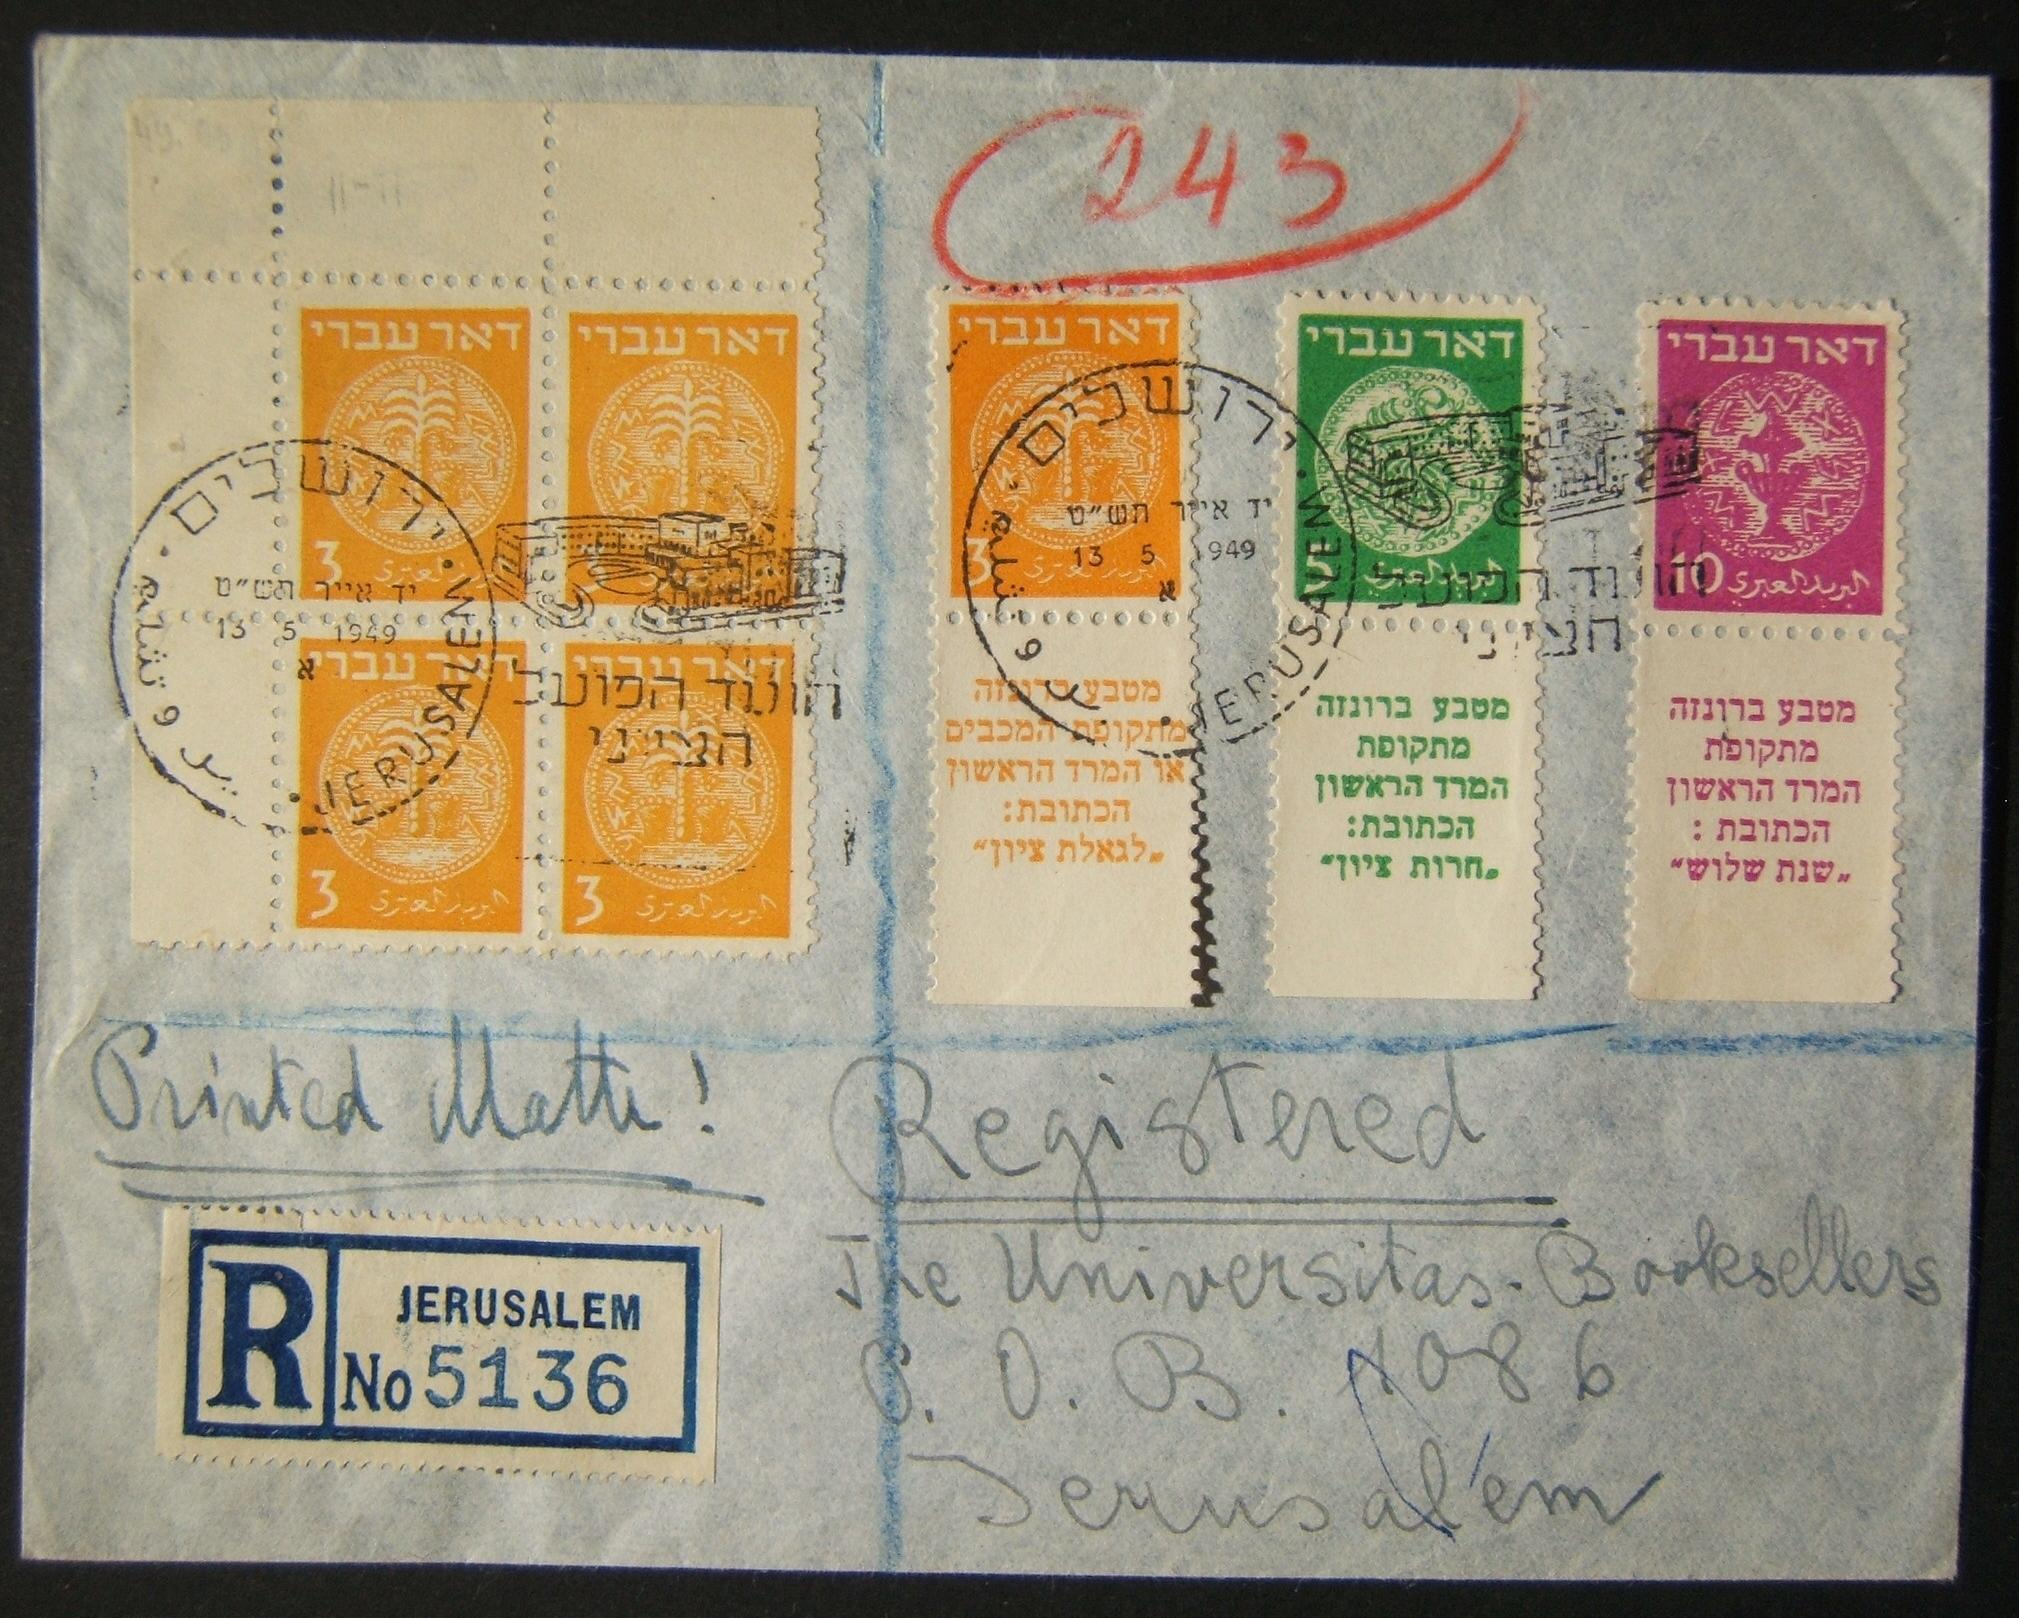 13-5-1949 Jerusalem printed matter mail with 3-color partly tabbed Doar Ivri franking